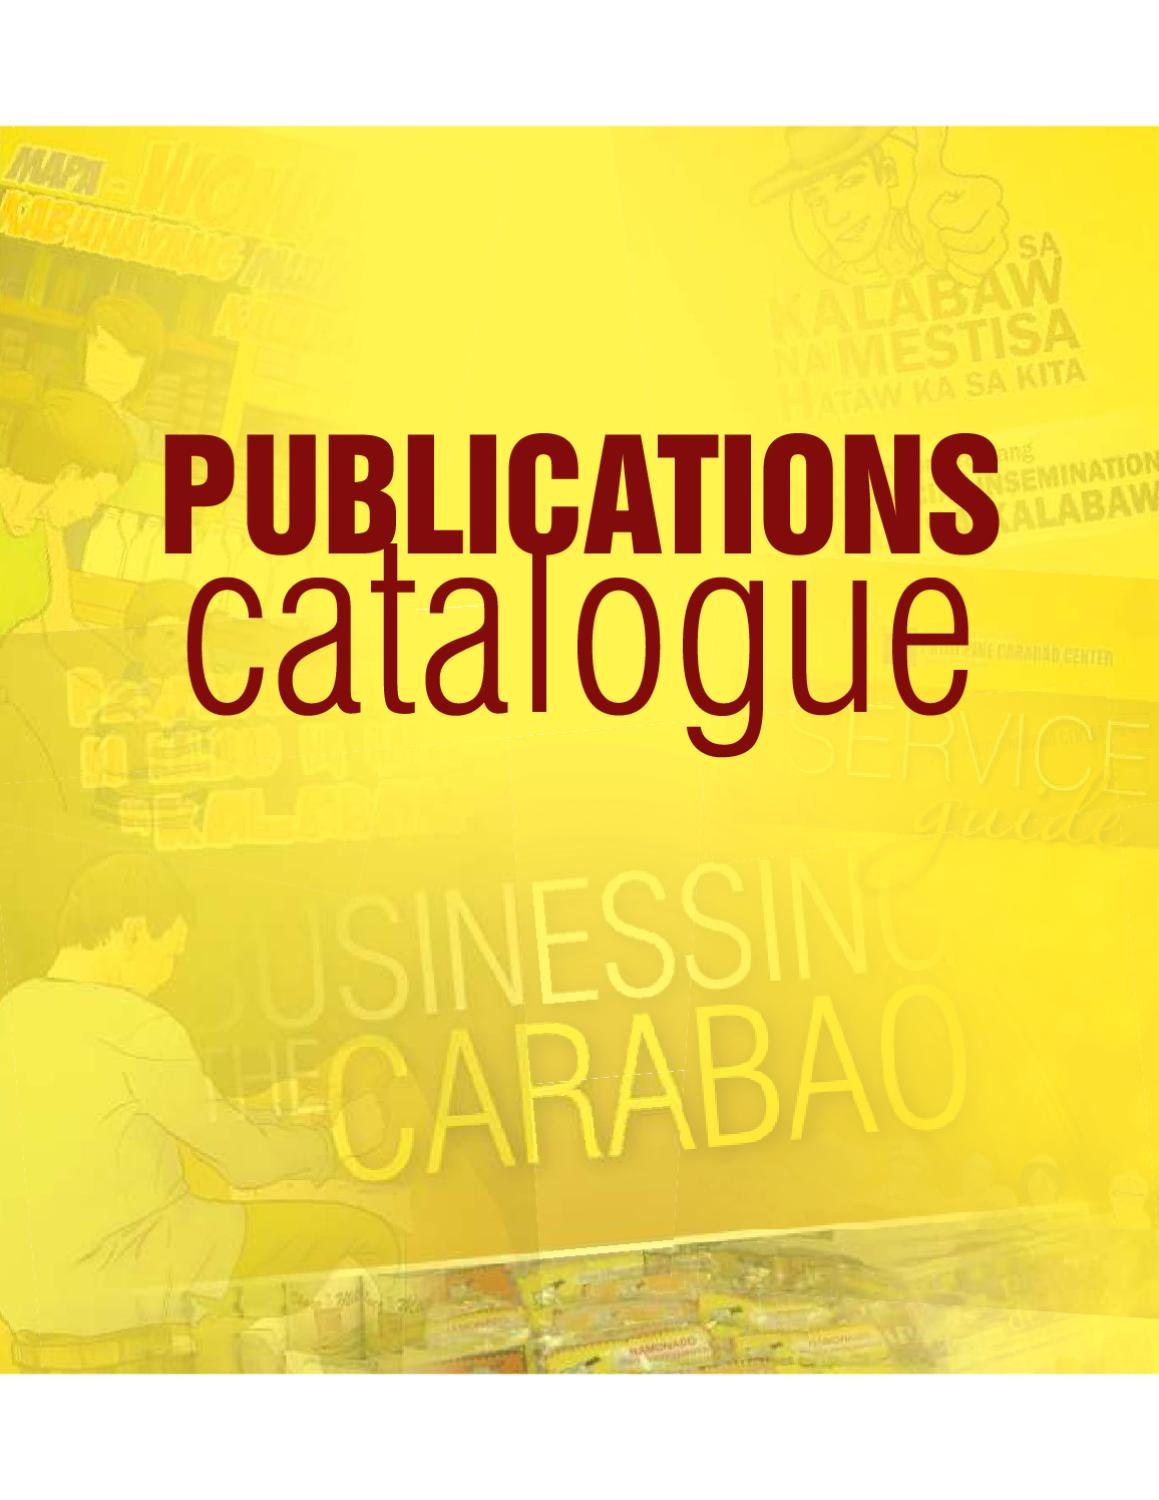 PCC Publication Catalogue by krmc library - issuu